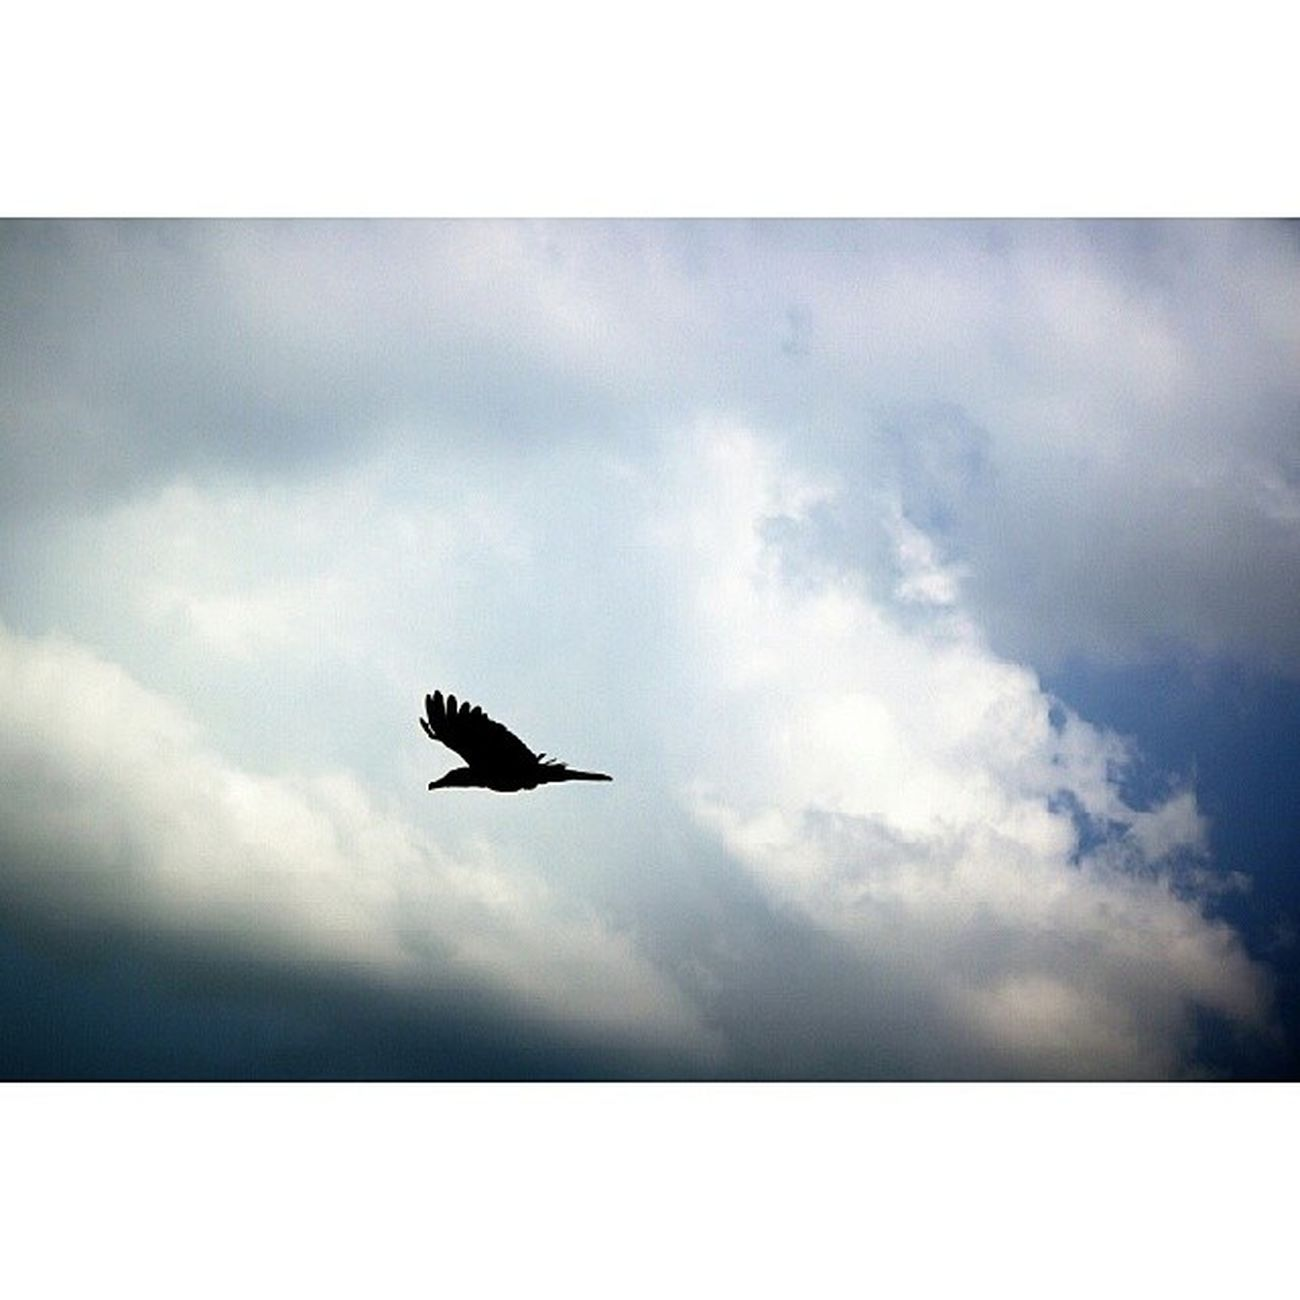 Flying high in the clouds. Bird Ibon Igers Instadaily photooftheday snapseed photography